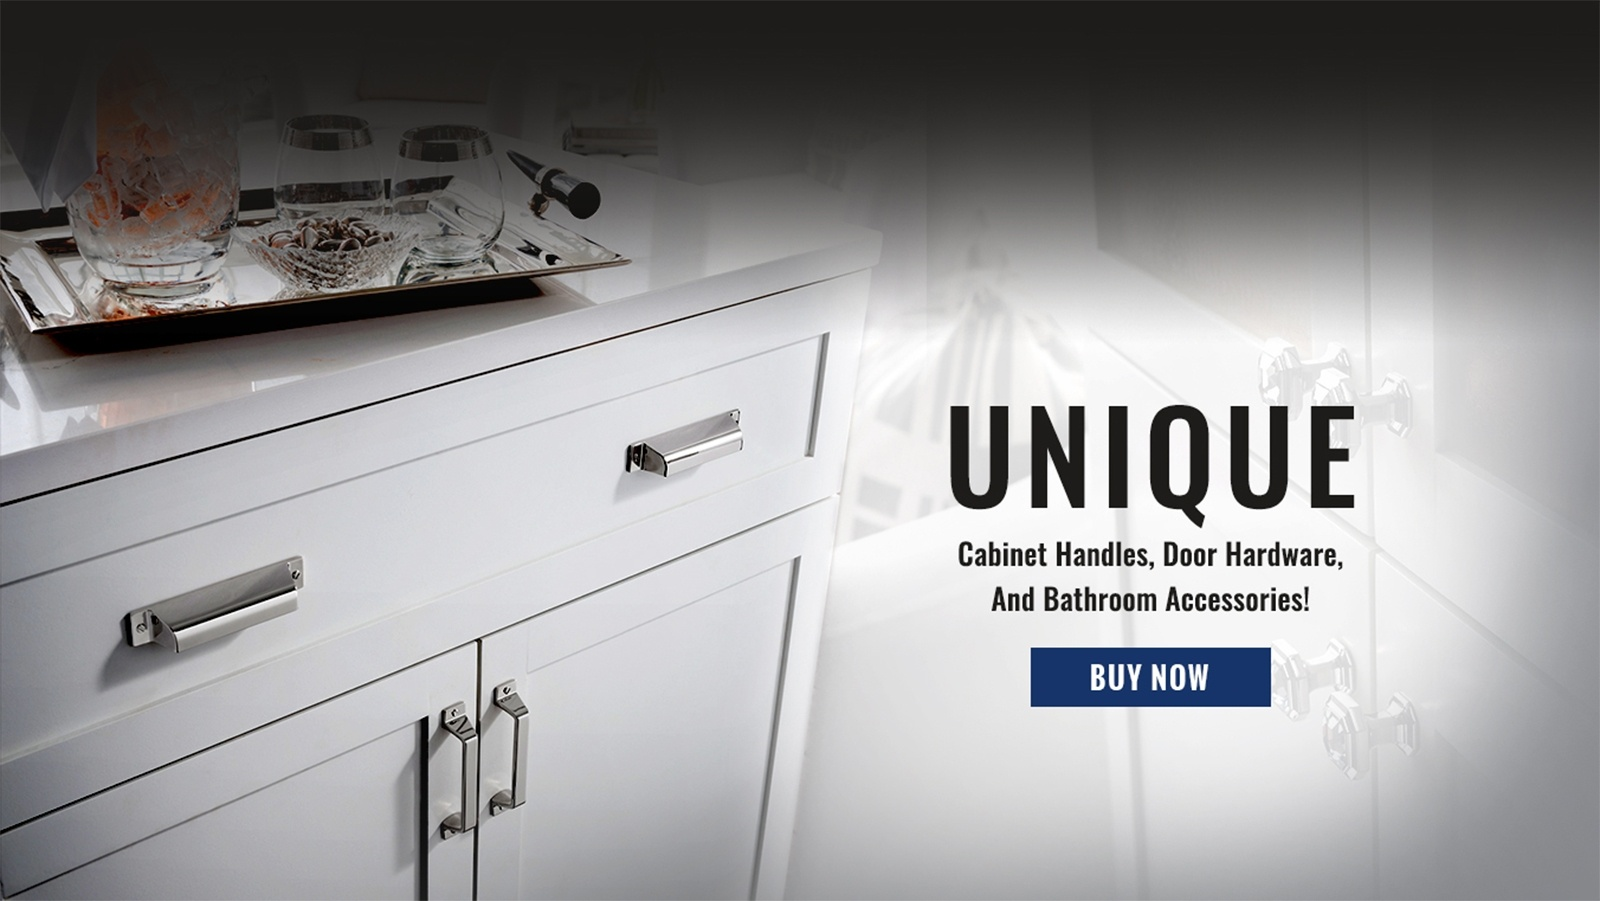 Unique Cabinet Handles, Door Hardware, and Bathroom Accessories by Handle This